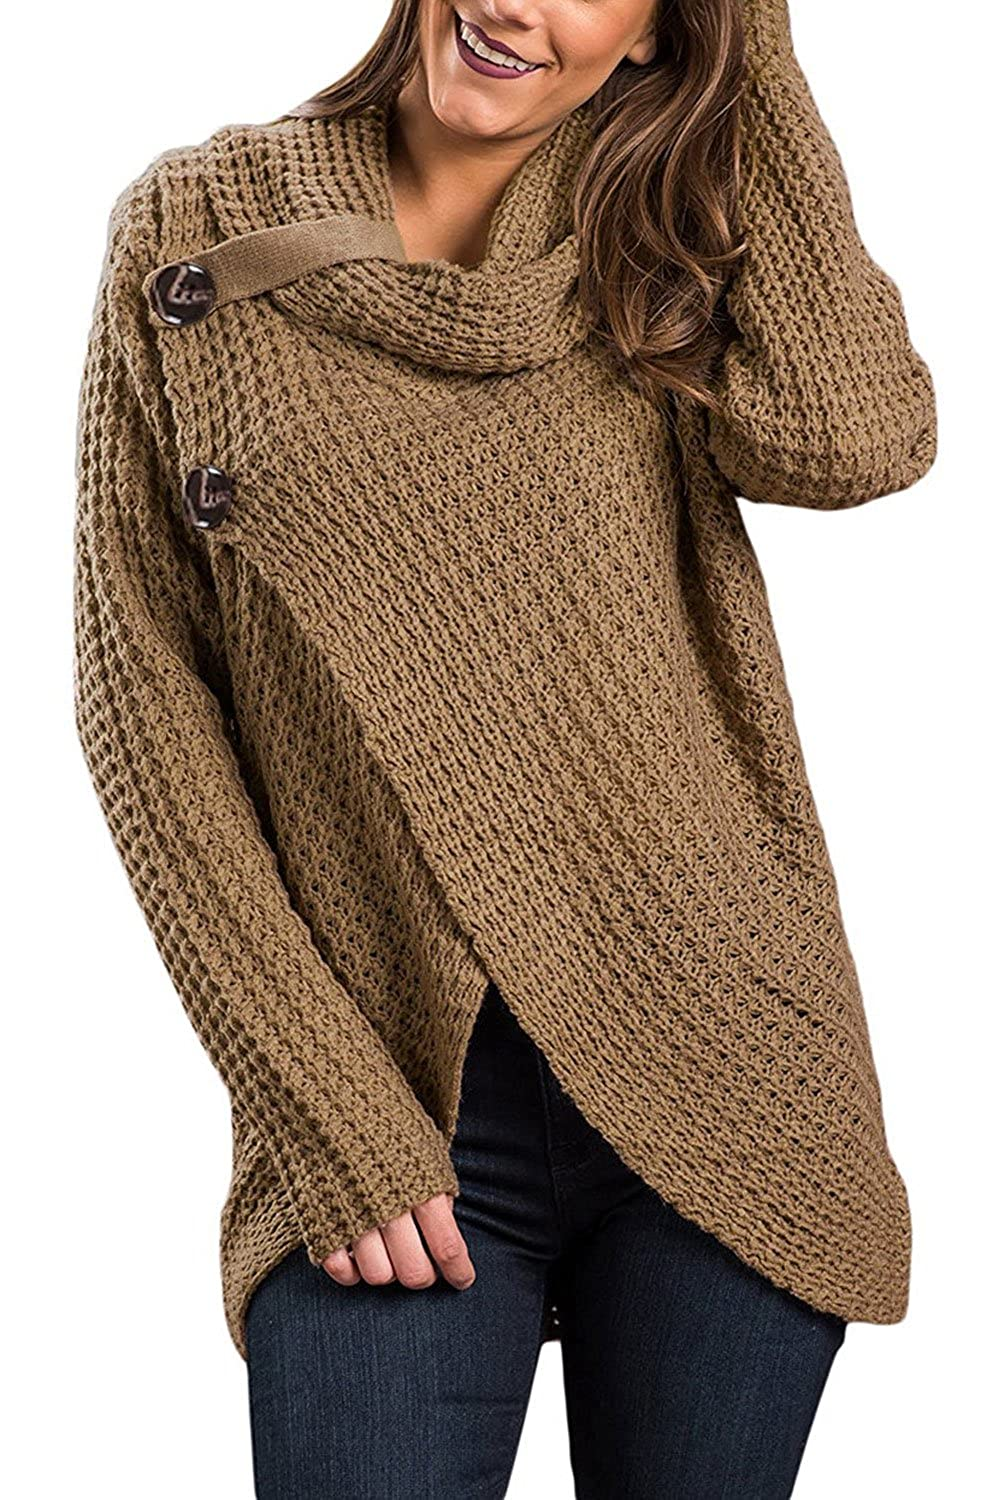 8e9631595 Women Chunky Turtleneck Sweater Button Poncho Capes Pullover ...